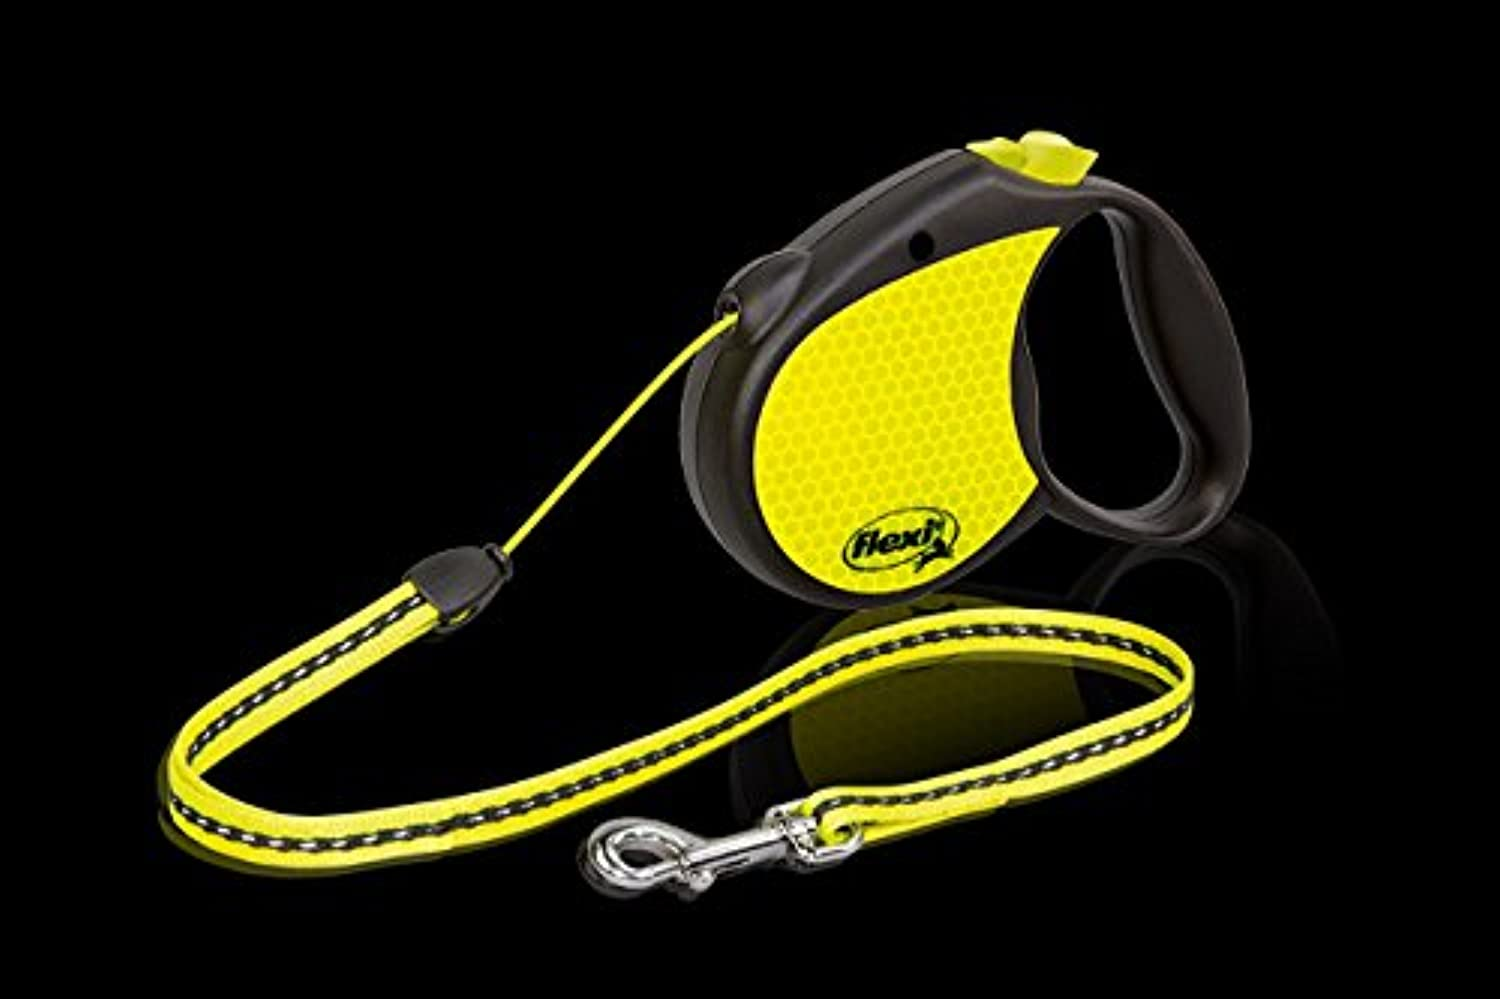 Flexi Retractable Neon Dog Lead, Medium Size Leash, Cord 5m, For a Dog up to